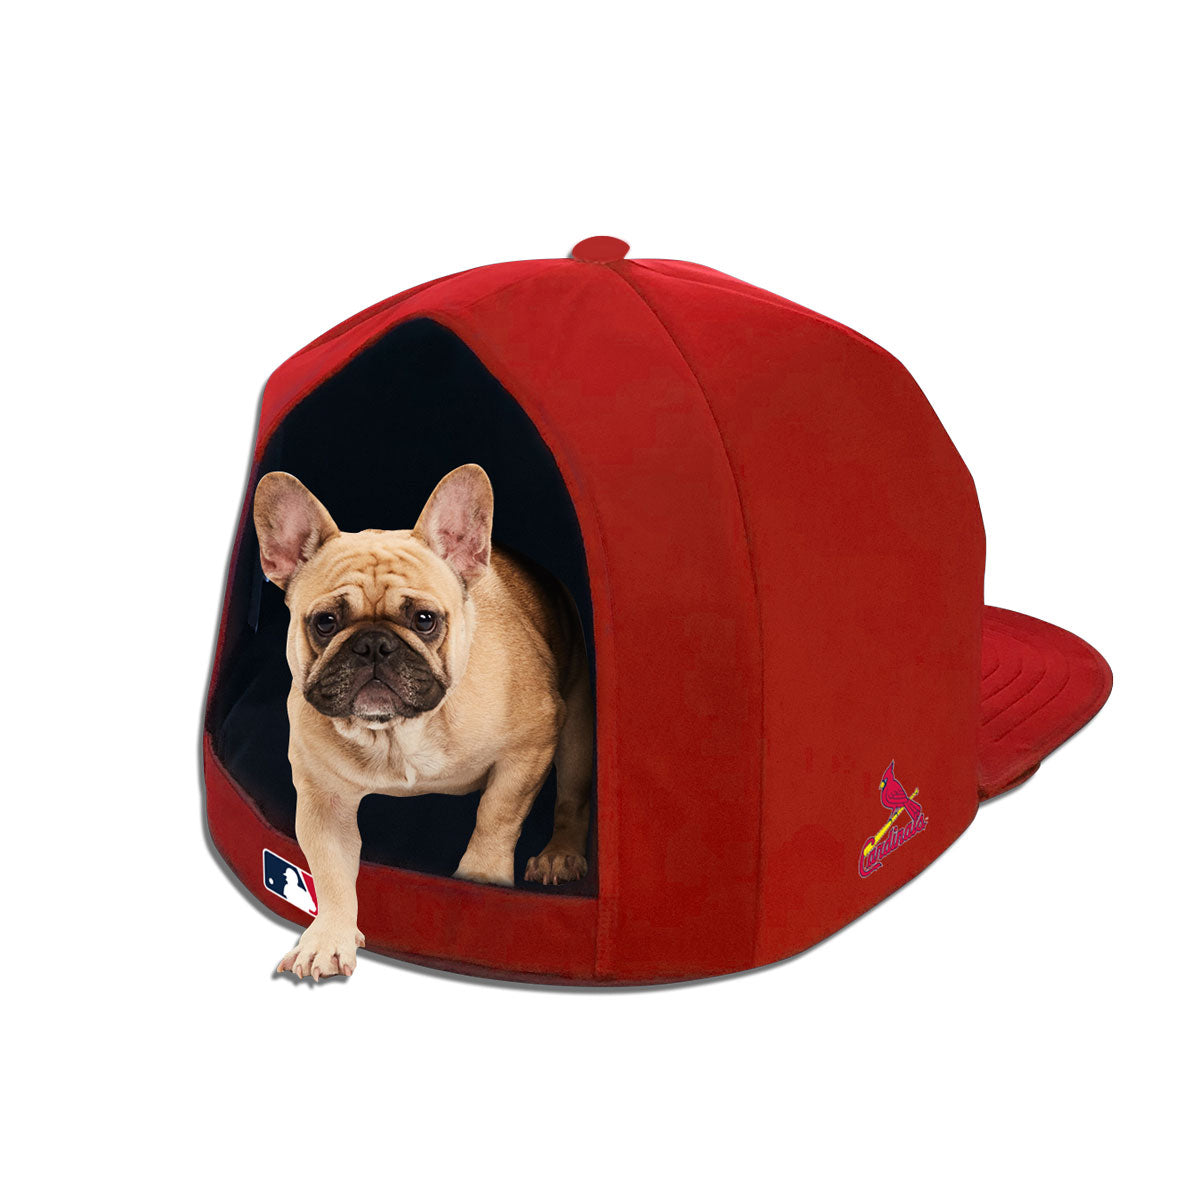 Nap Cap Plush Edition - St. Louis Cardinals